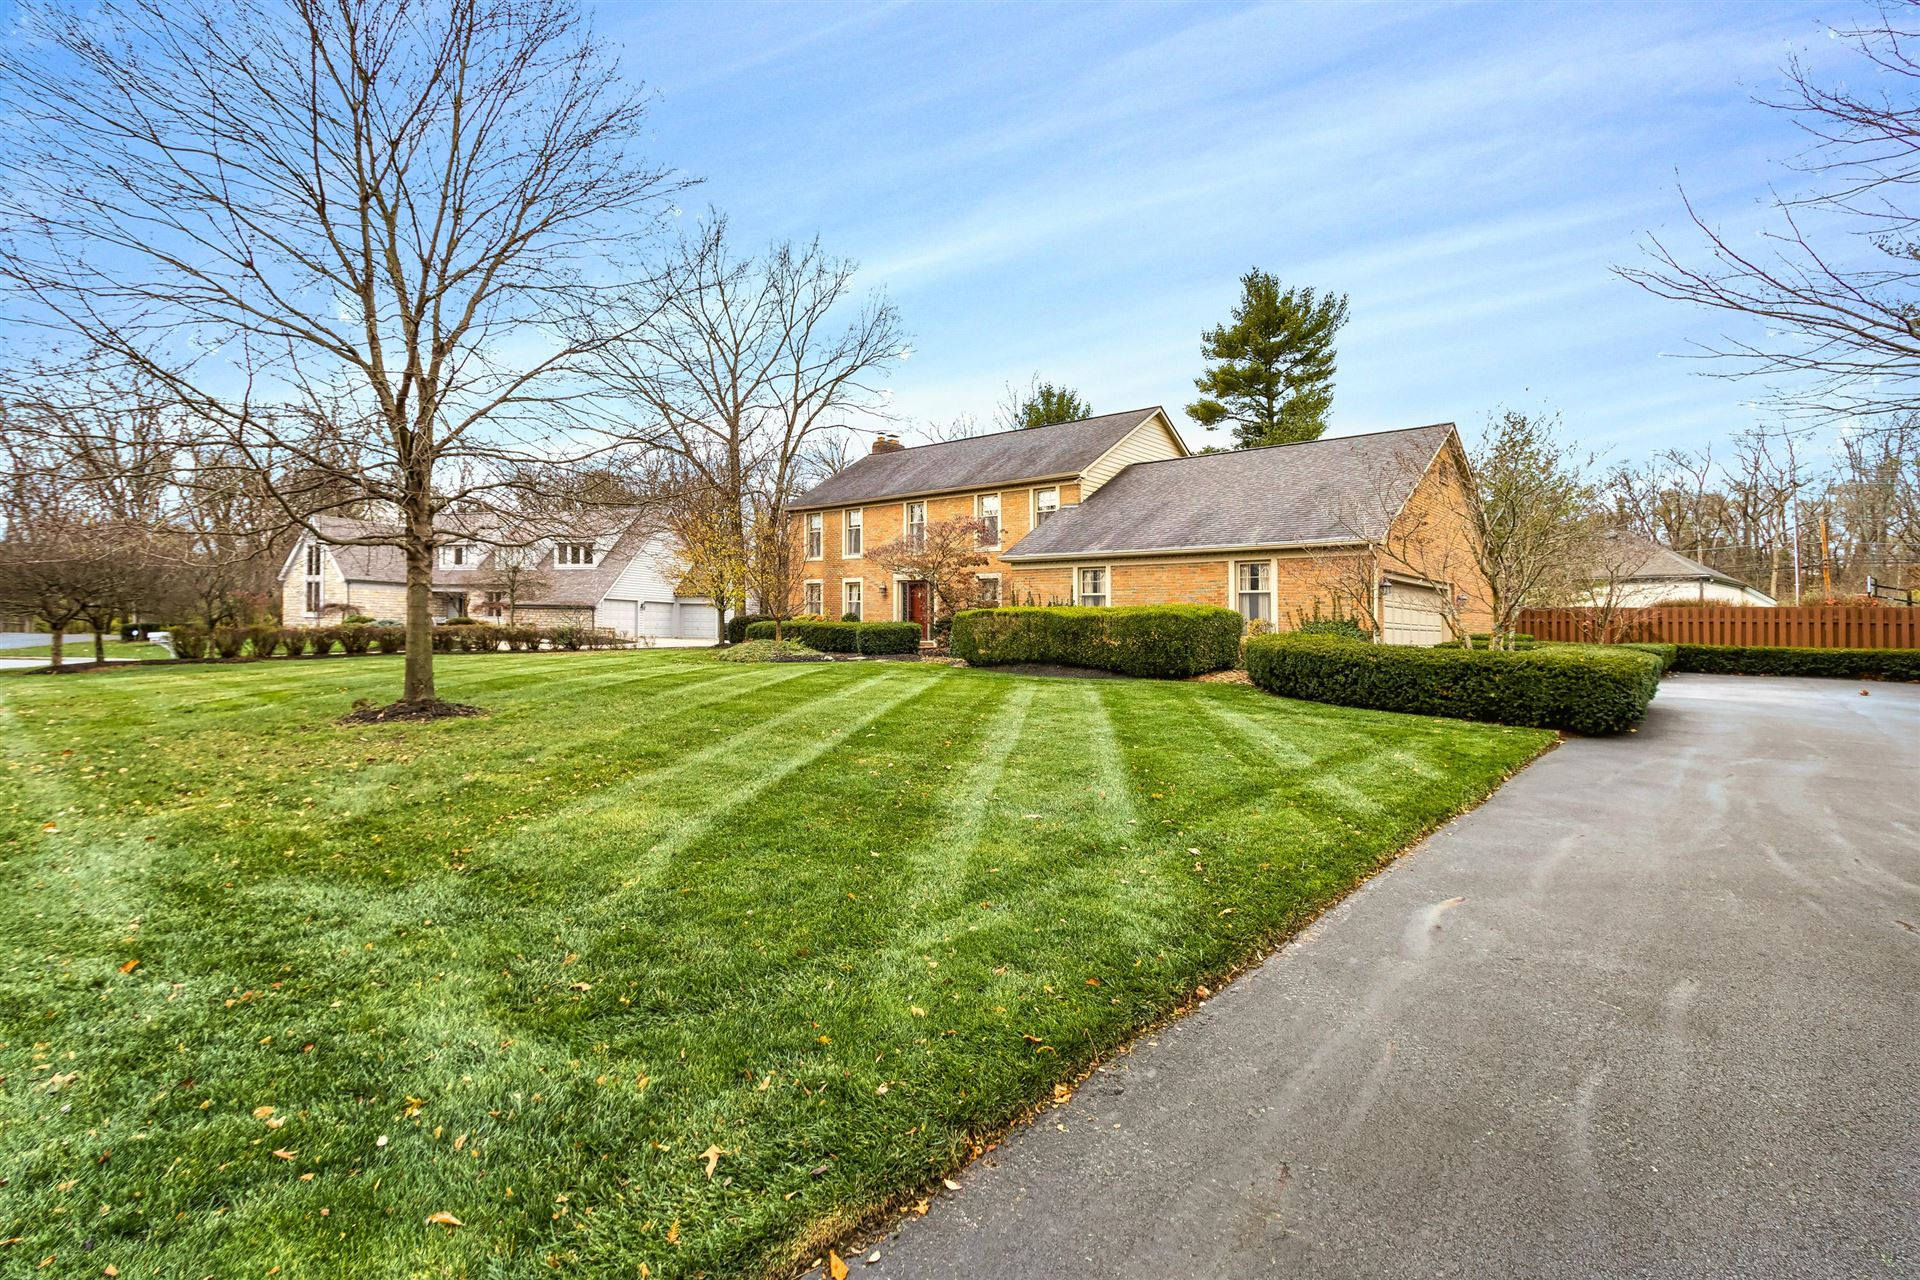 Photo of 6125 Karrer Place, Dublin, OH 43017 (MLS # 220041405)